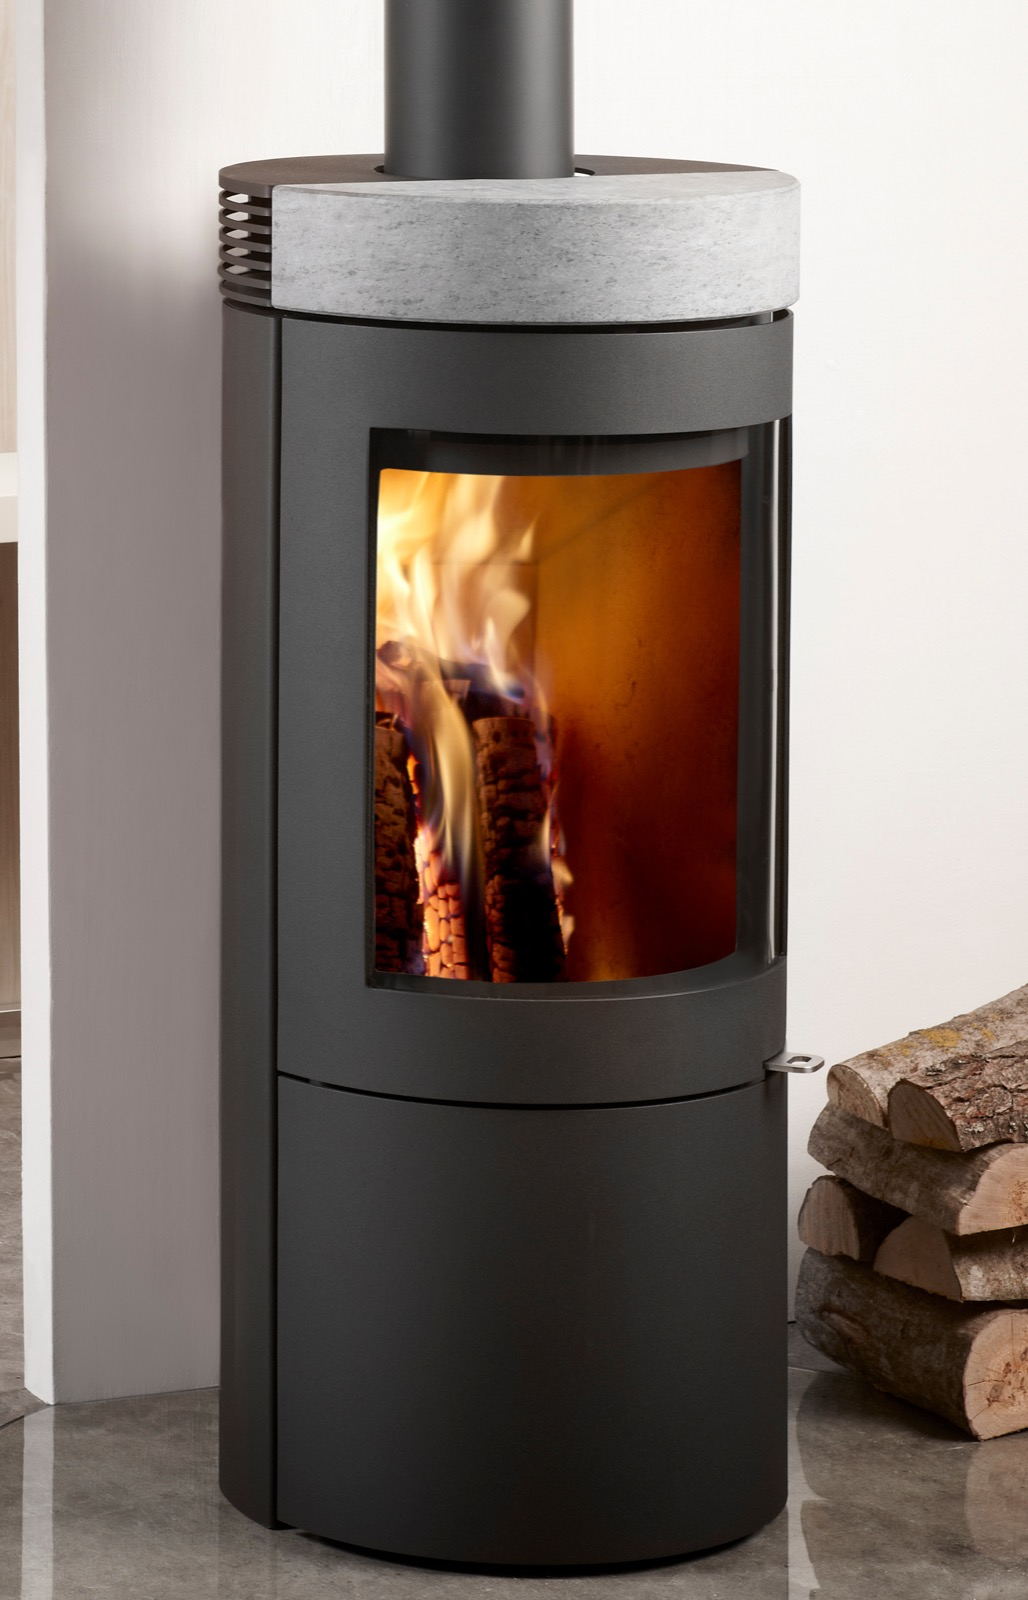 Westfire Uniq 27 Se Convection Wood Burning Stove In Black With Soapstone Top